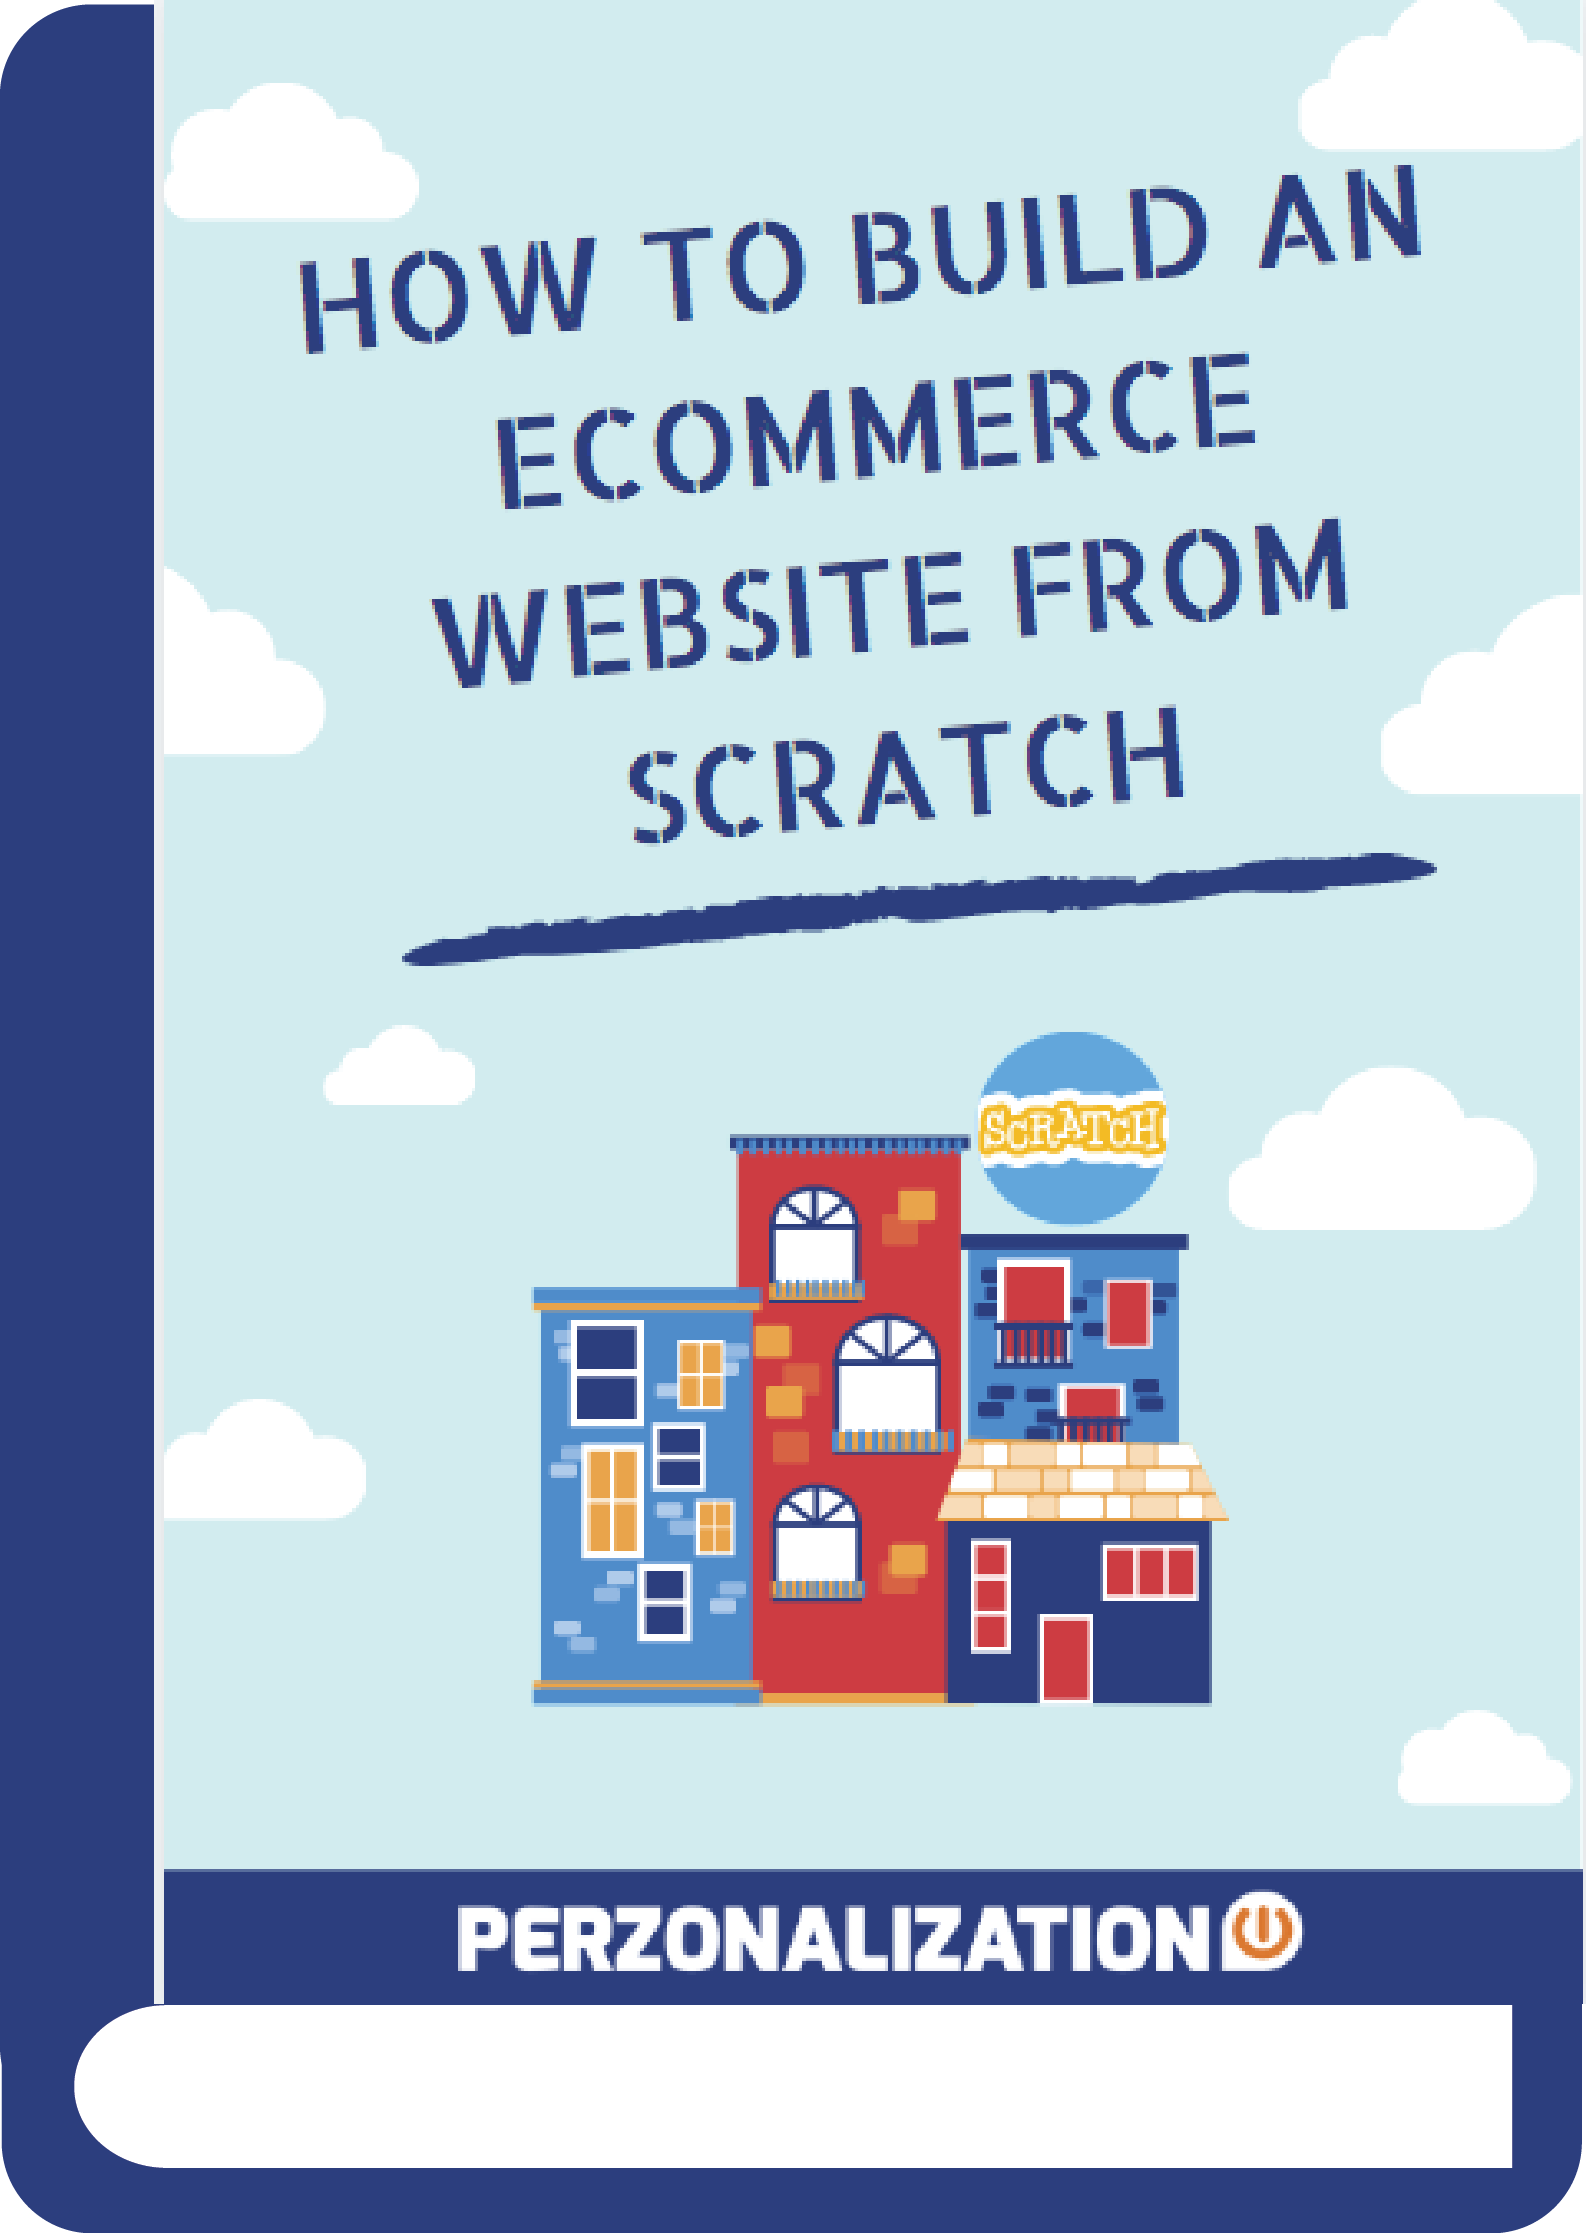 In this free eBook, we have summarised all the relevant information on how to build an eCommerce website from scratch for online entrepreneurs.